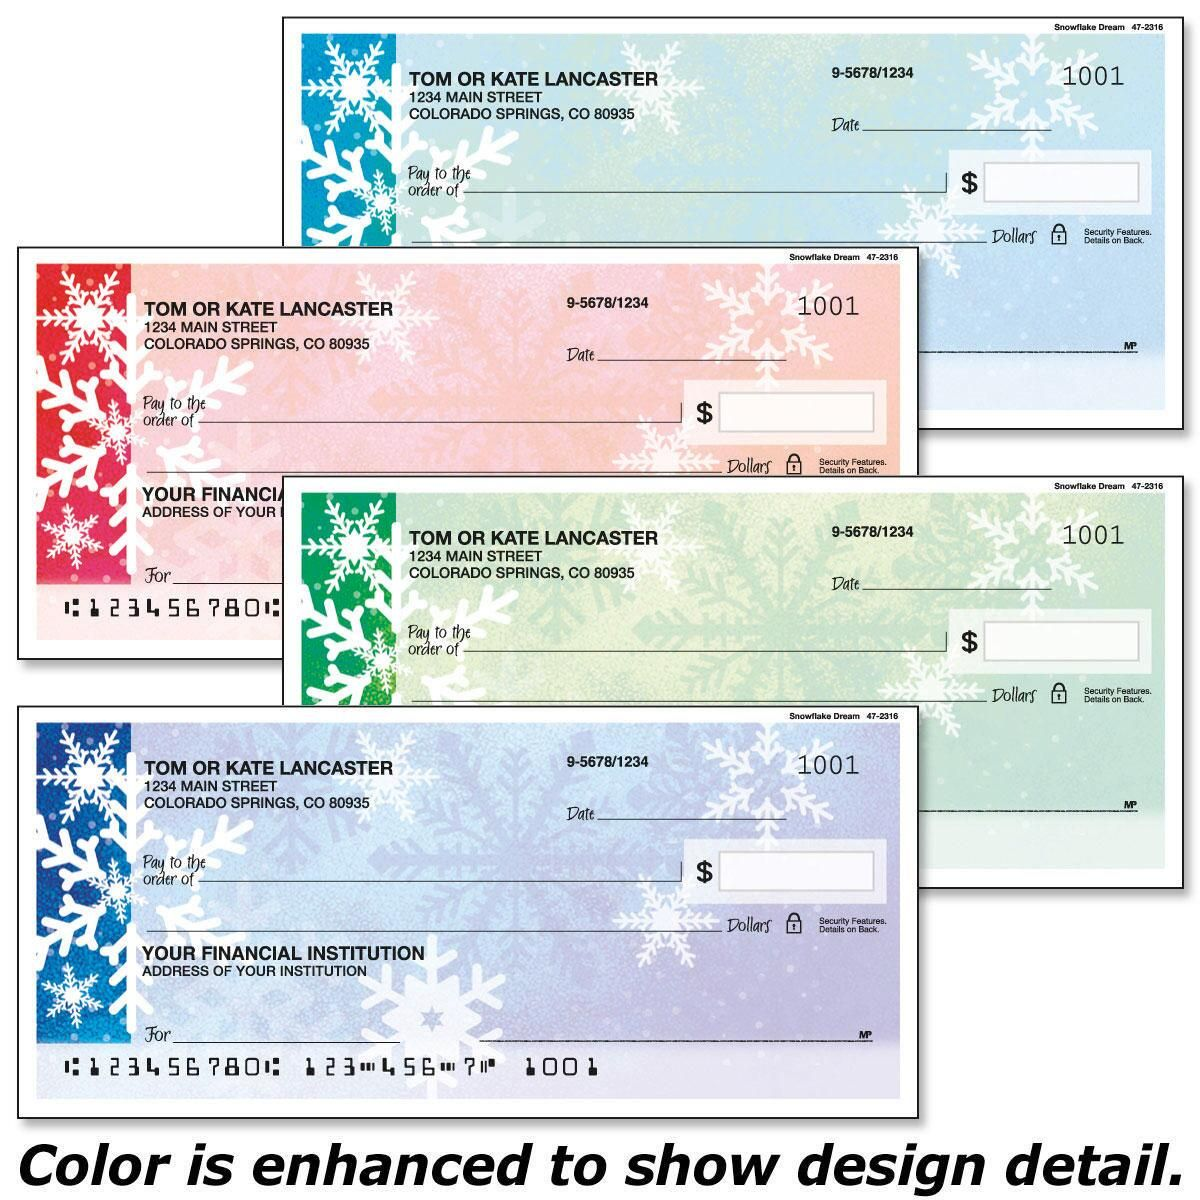 Snowflake Dream Checks